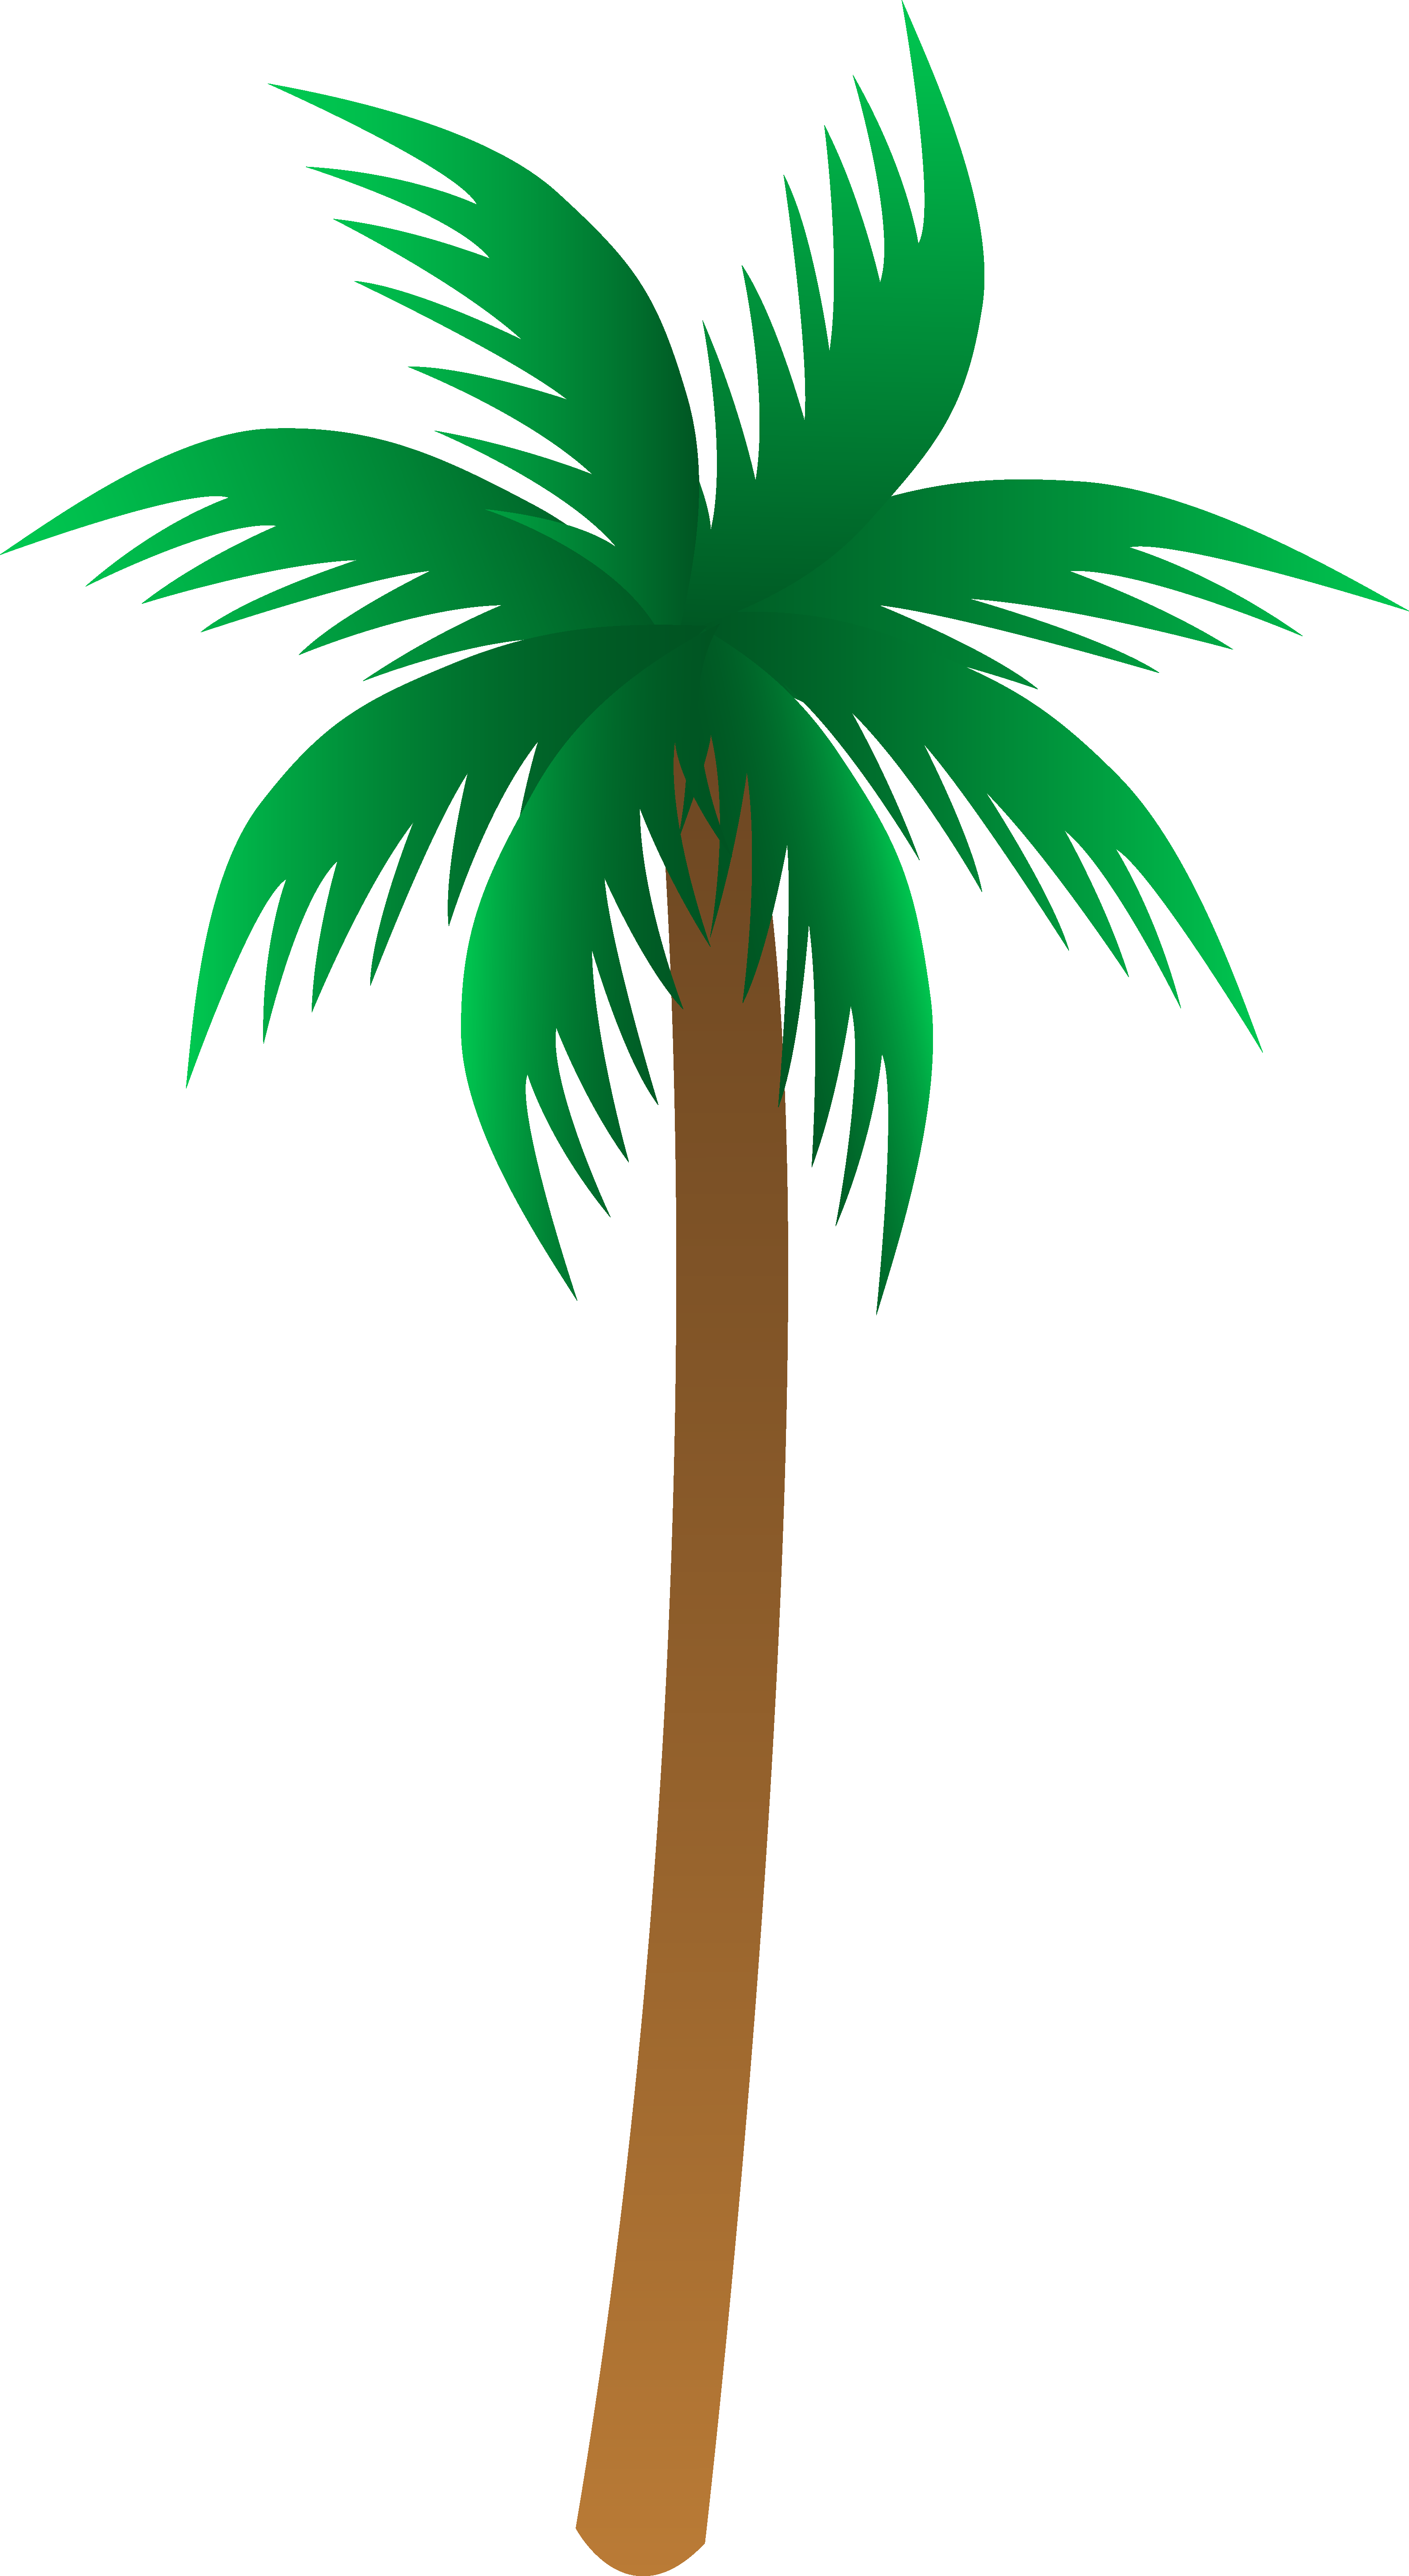 Simple Drawing Of A Palm Tree at GetDrawings.com   Free for personal ...